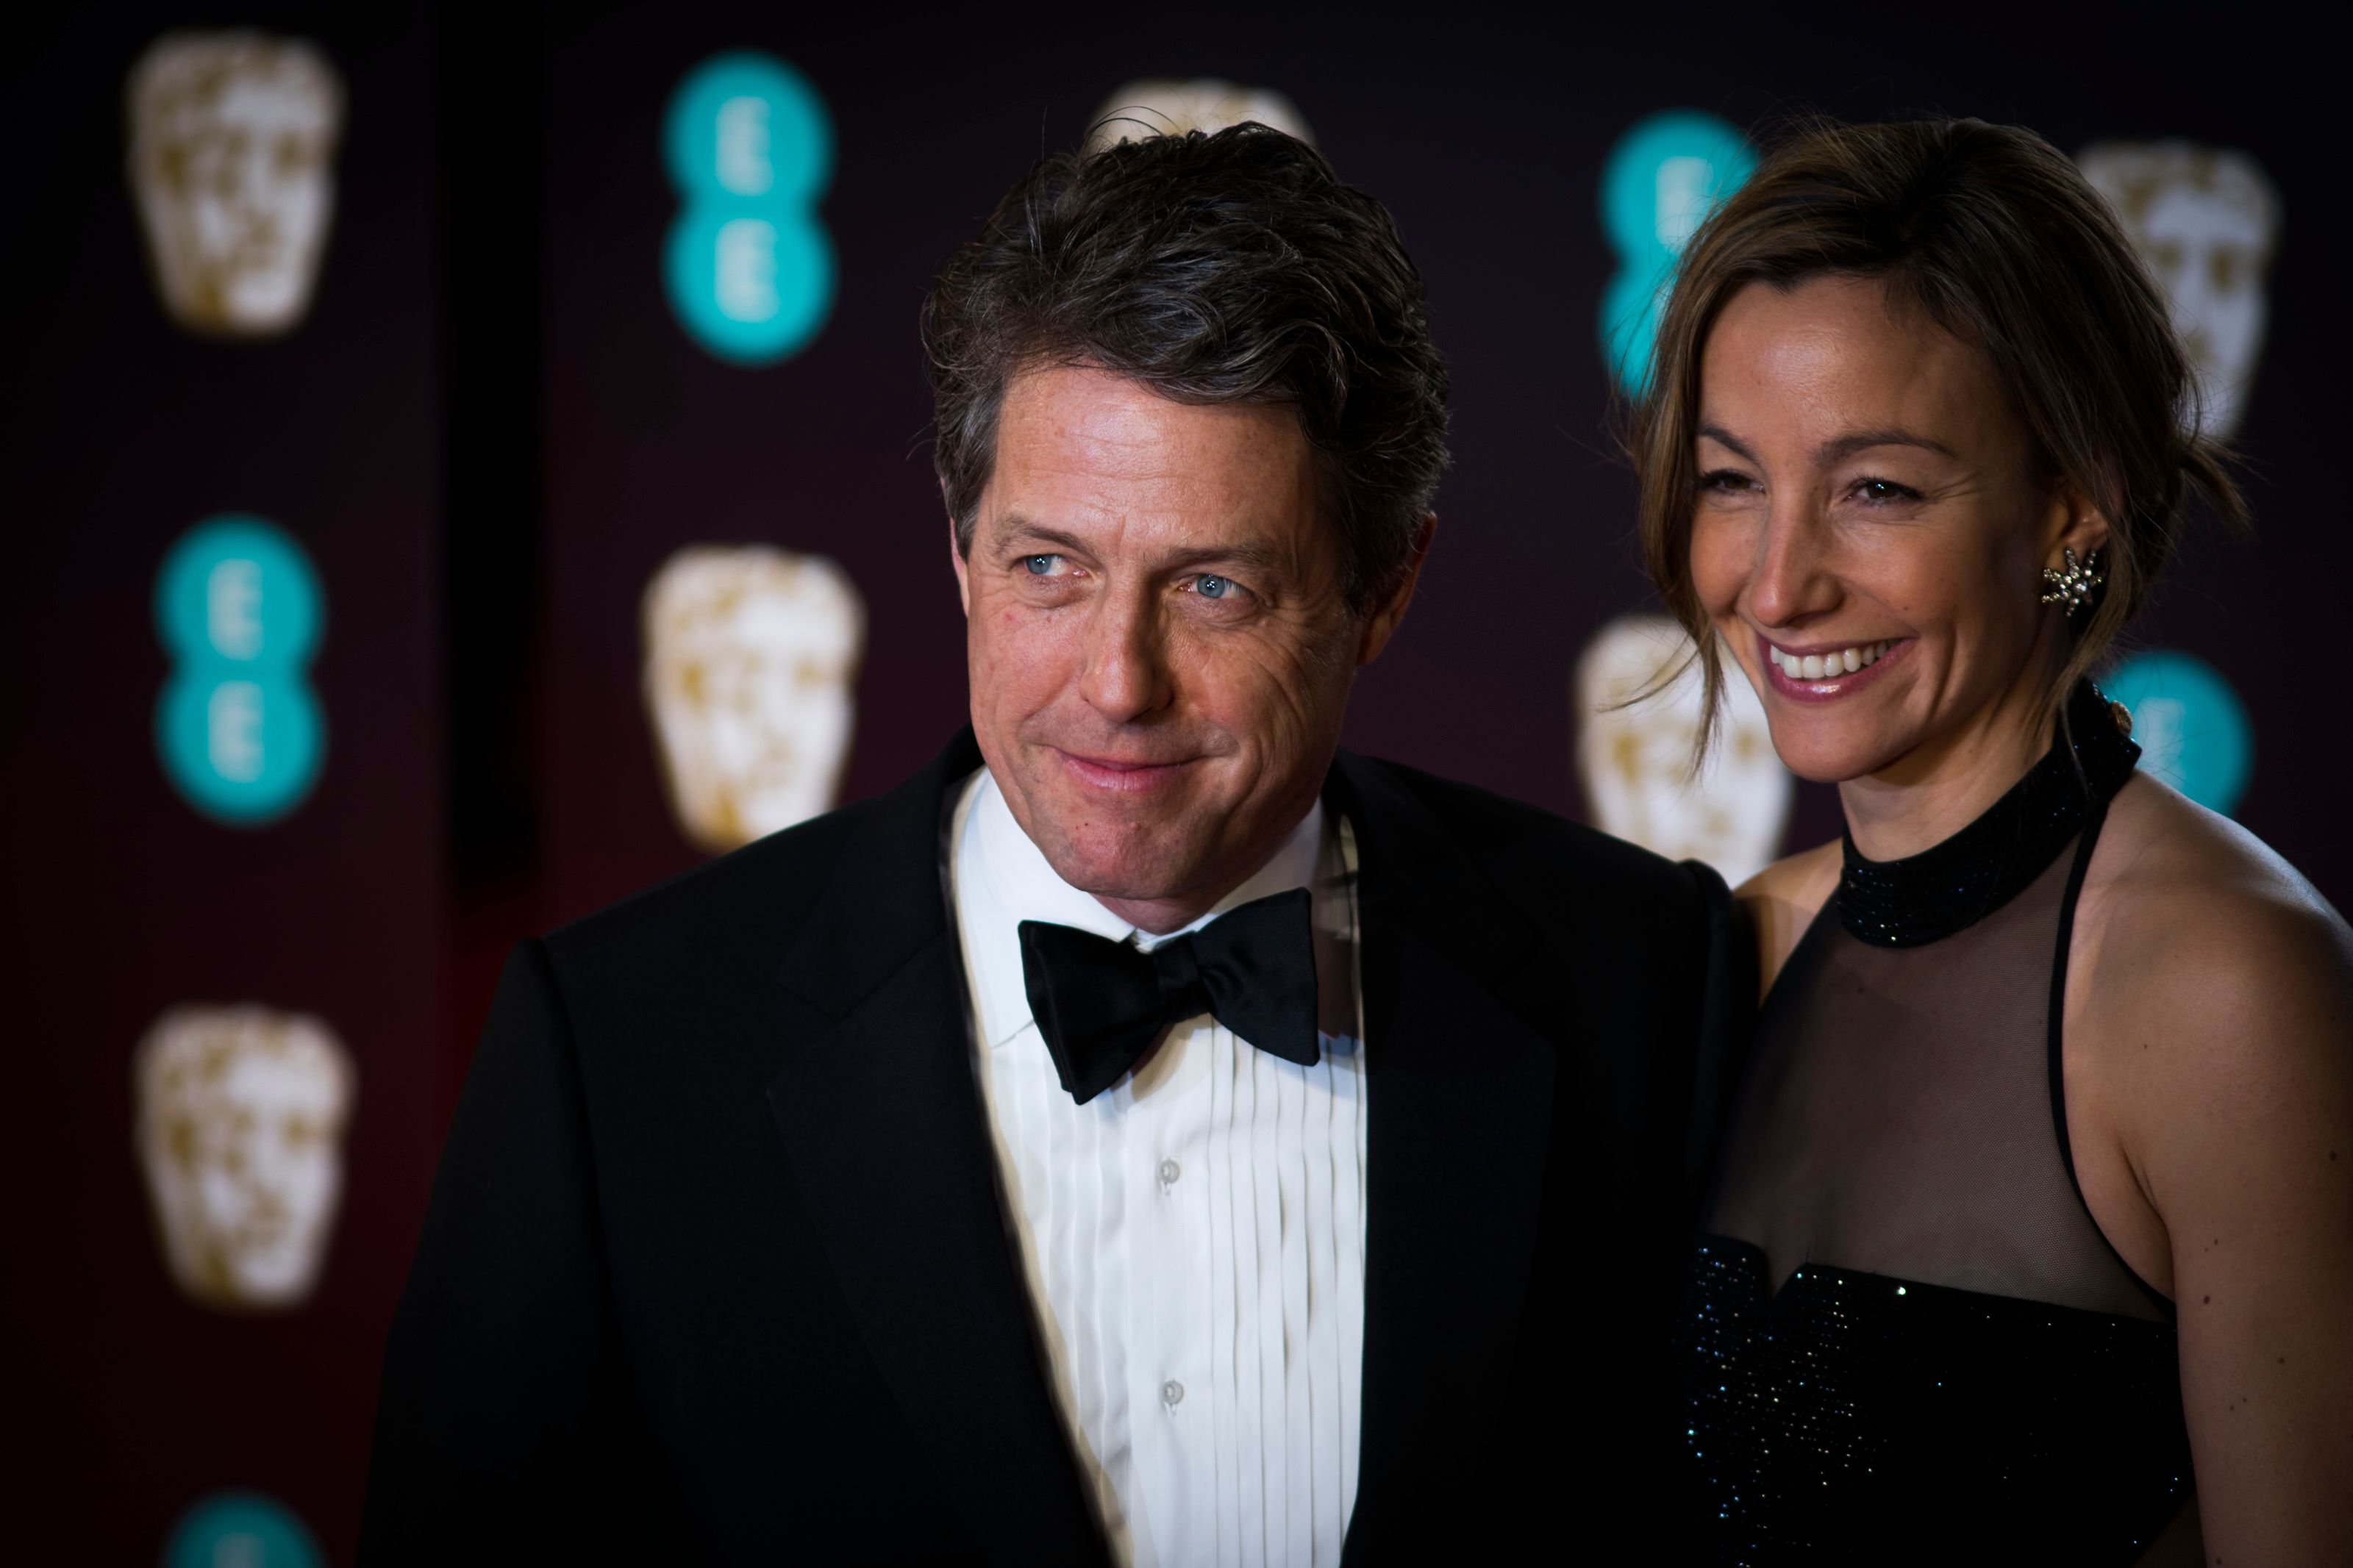 Hugh Grant and Anna Elisabet Eberstein at the 70th EE British Academy Film Awards in 2017 in London, England | Source: Getty Images